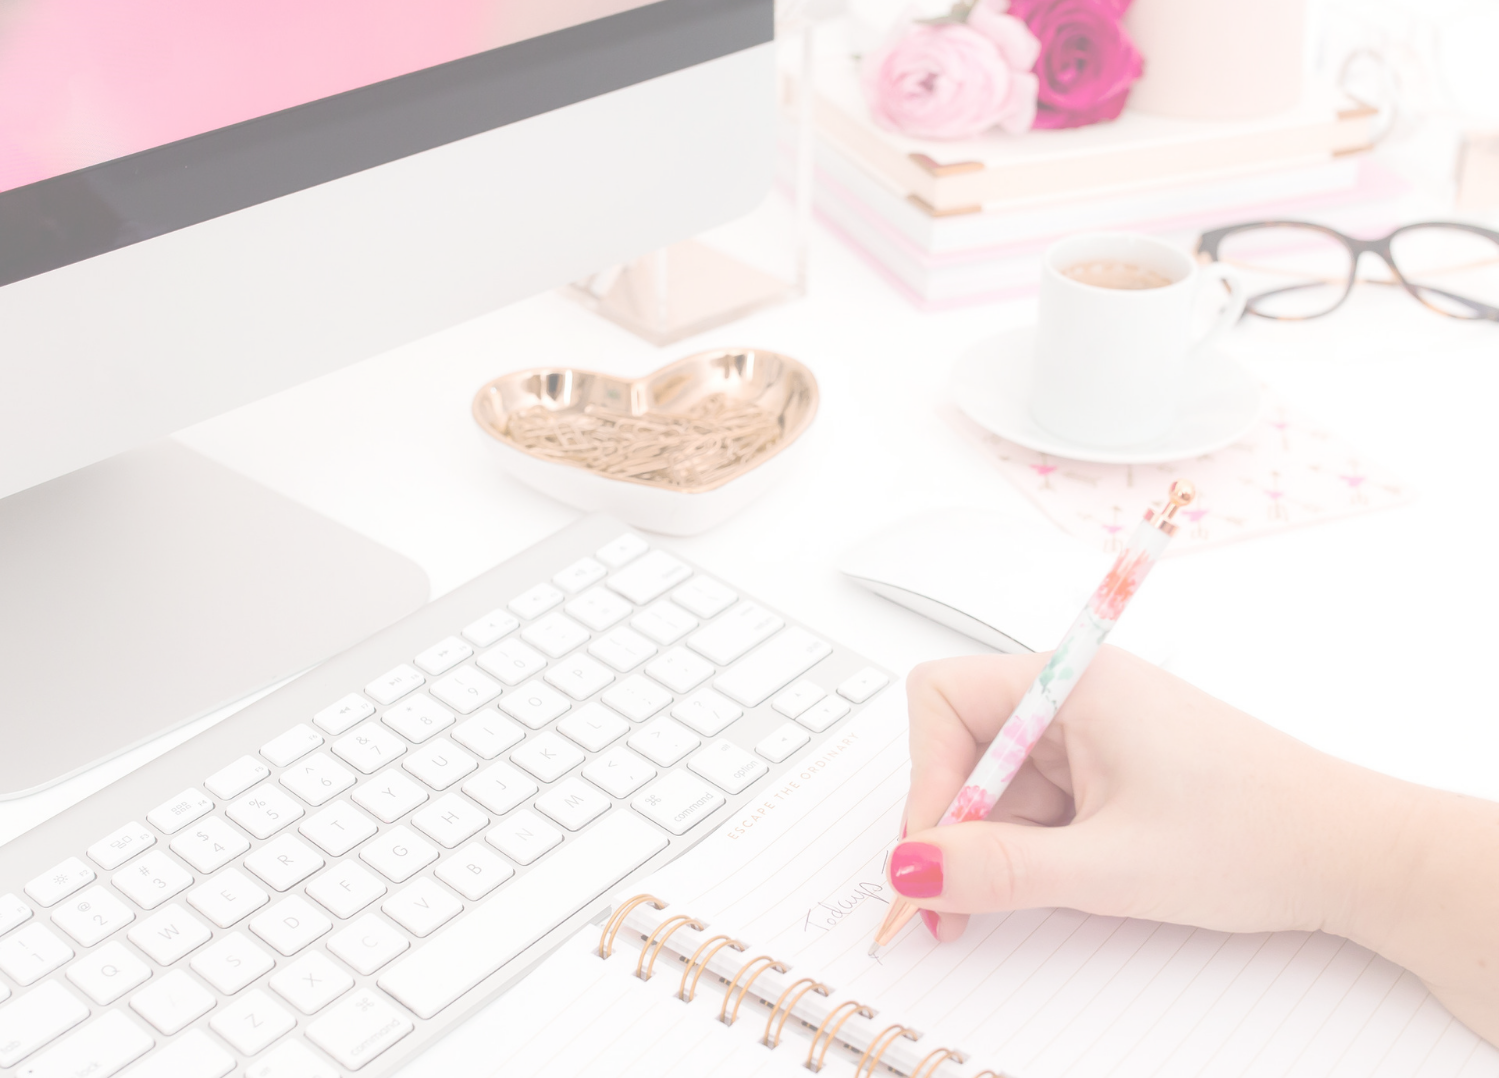 signature courses - With so many options available in the market, we focus to help you move from being an EMPLOYEE TO FEMPRENEUR. Our courses are designed to help you get started to launch and grow your business